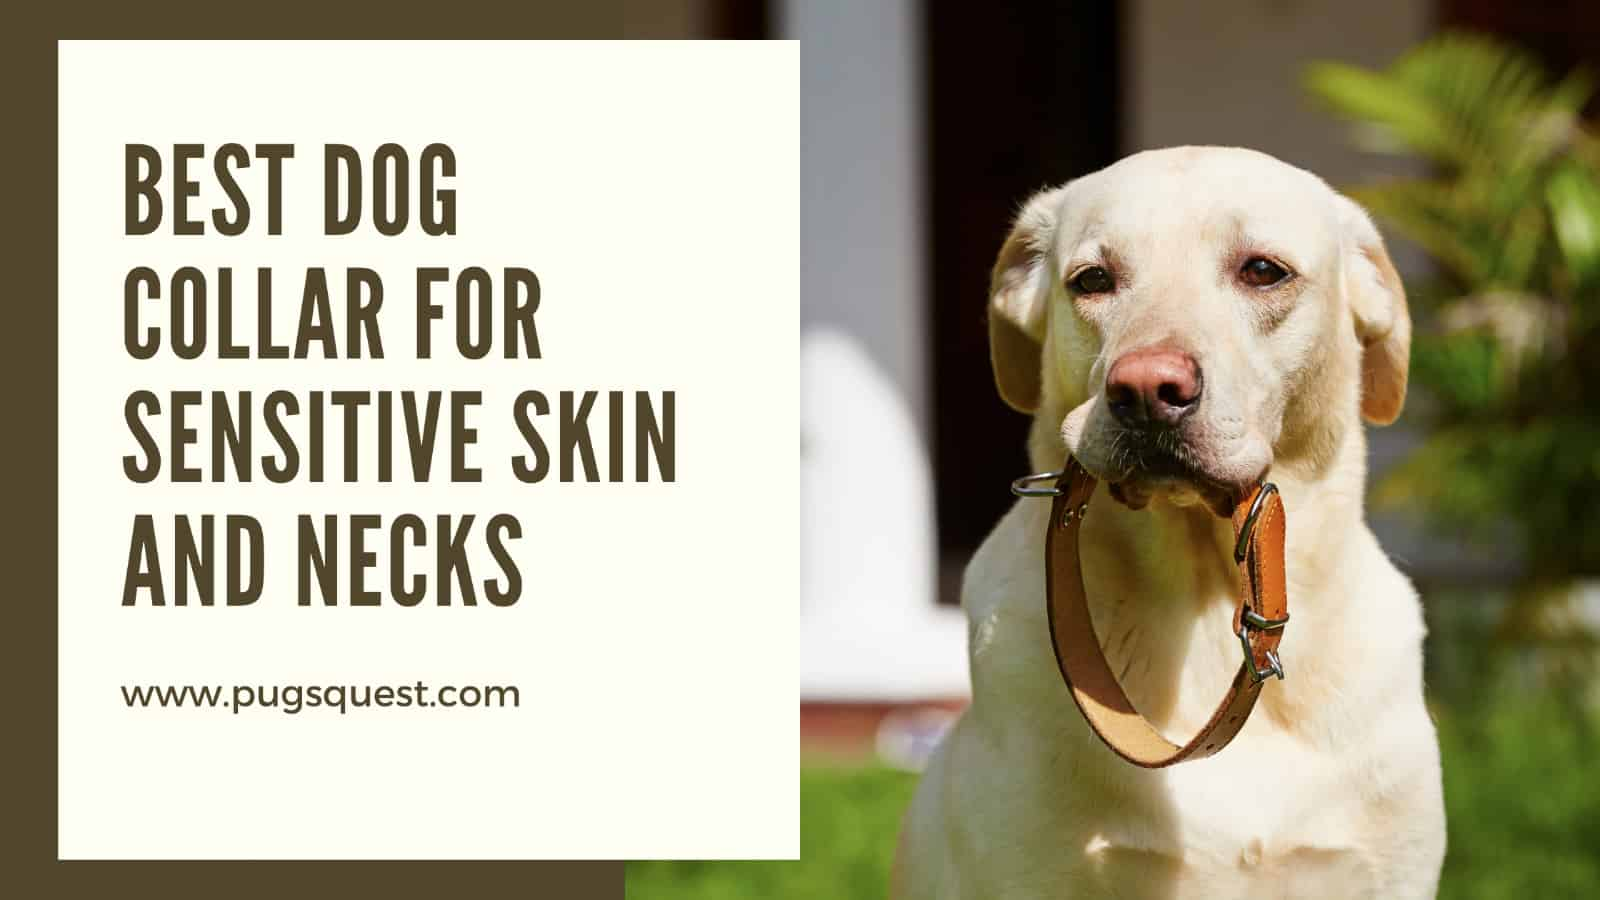 Best Dog Collar for Sensitive Skin and Necks